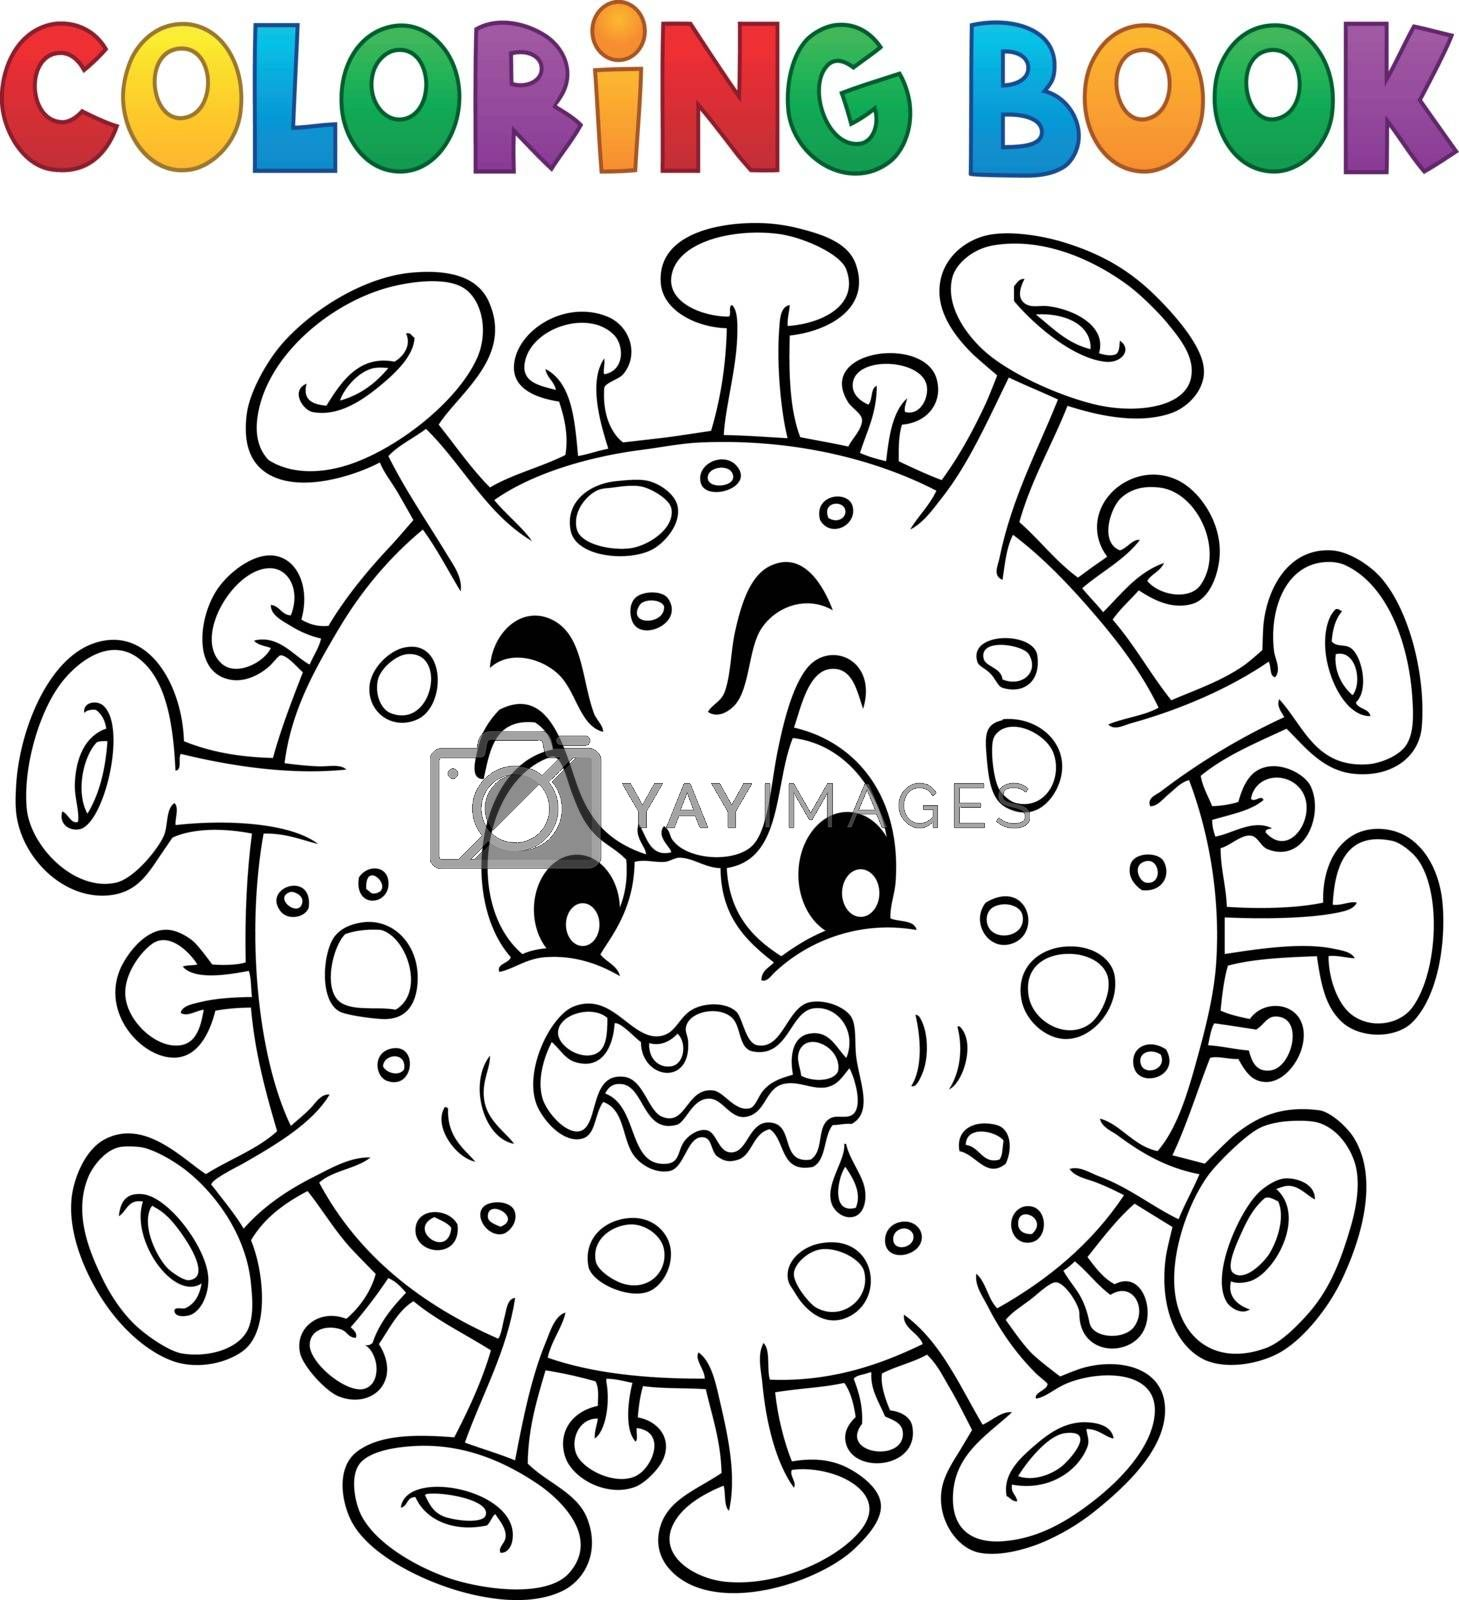 Coloring book virus theme 1 - eps10 vector illustration.